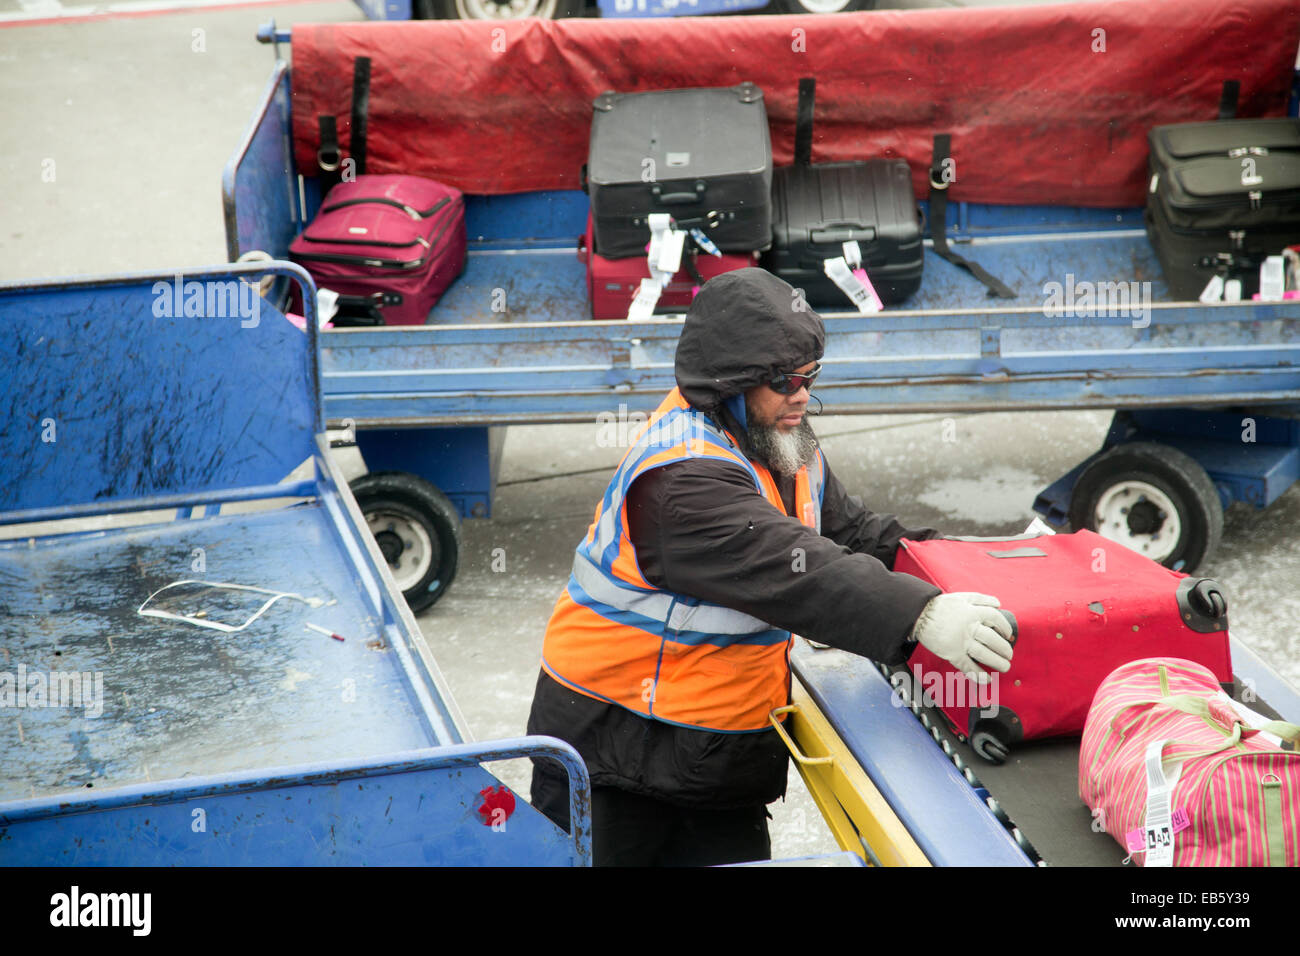 Denver, Colorado - A baggage handler unloads luggage from a Southwest Airlines plane at Denver International Airport. - Stock Image